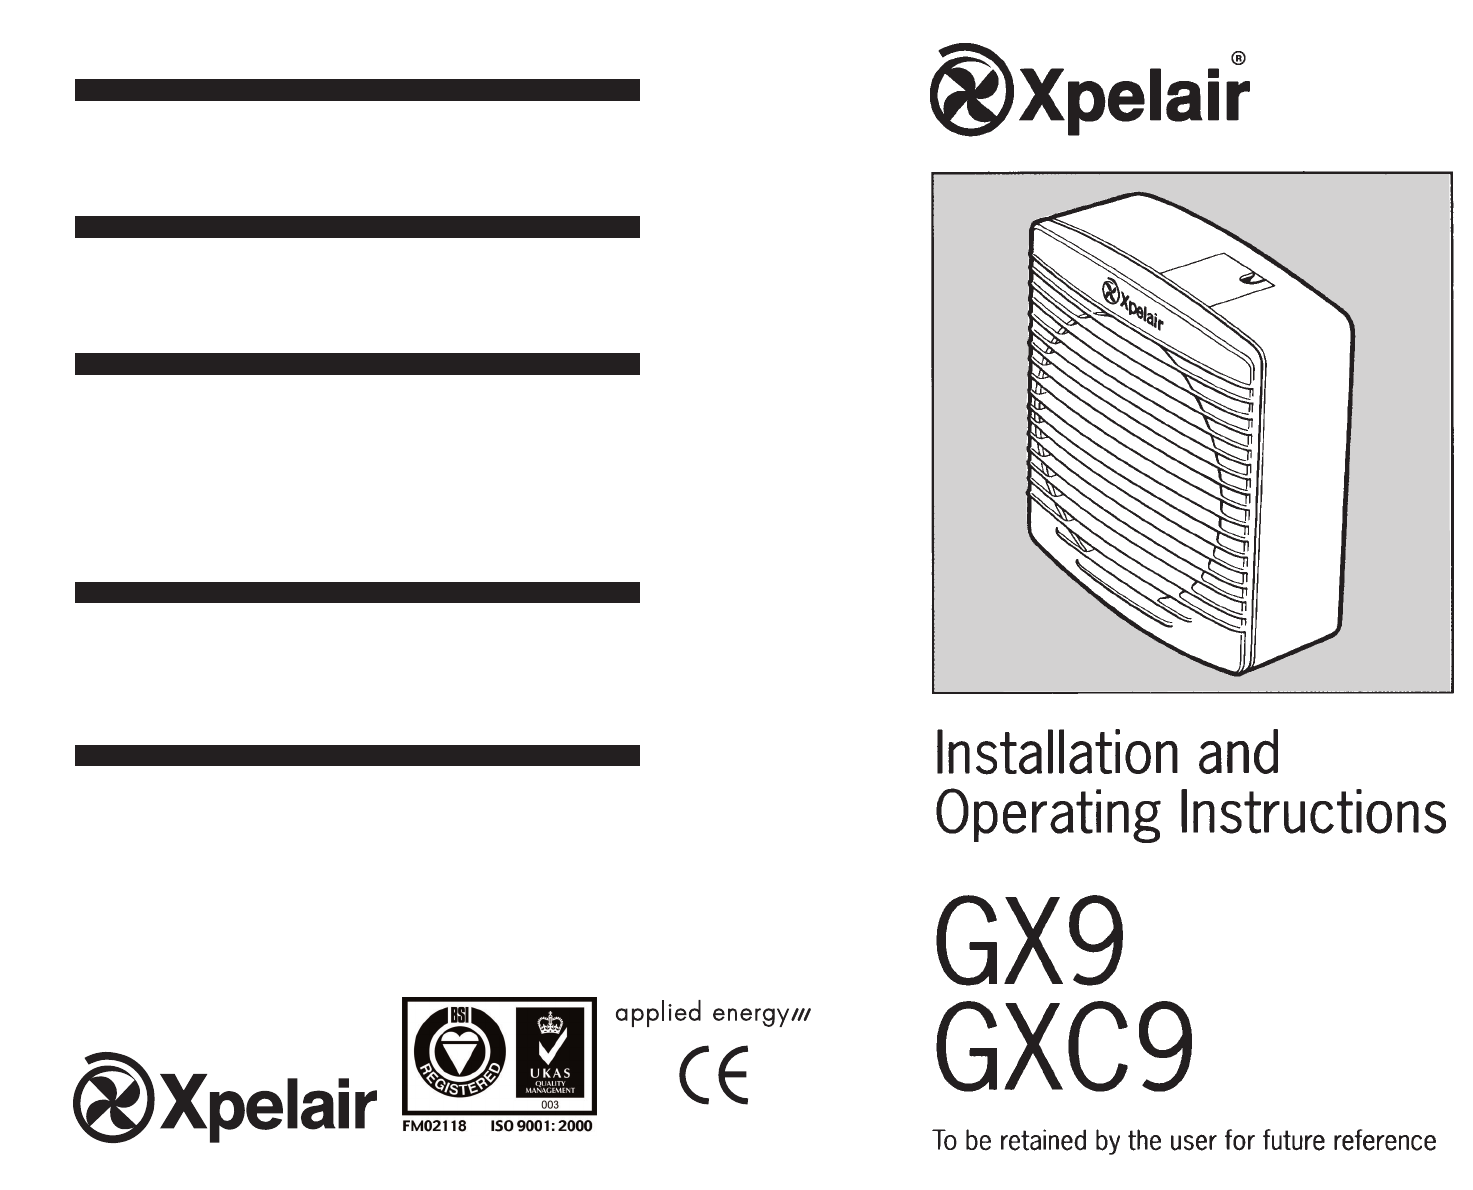 xpelair gx9 installation instructions